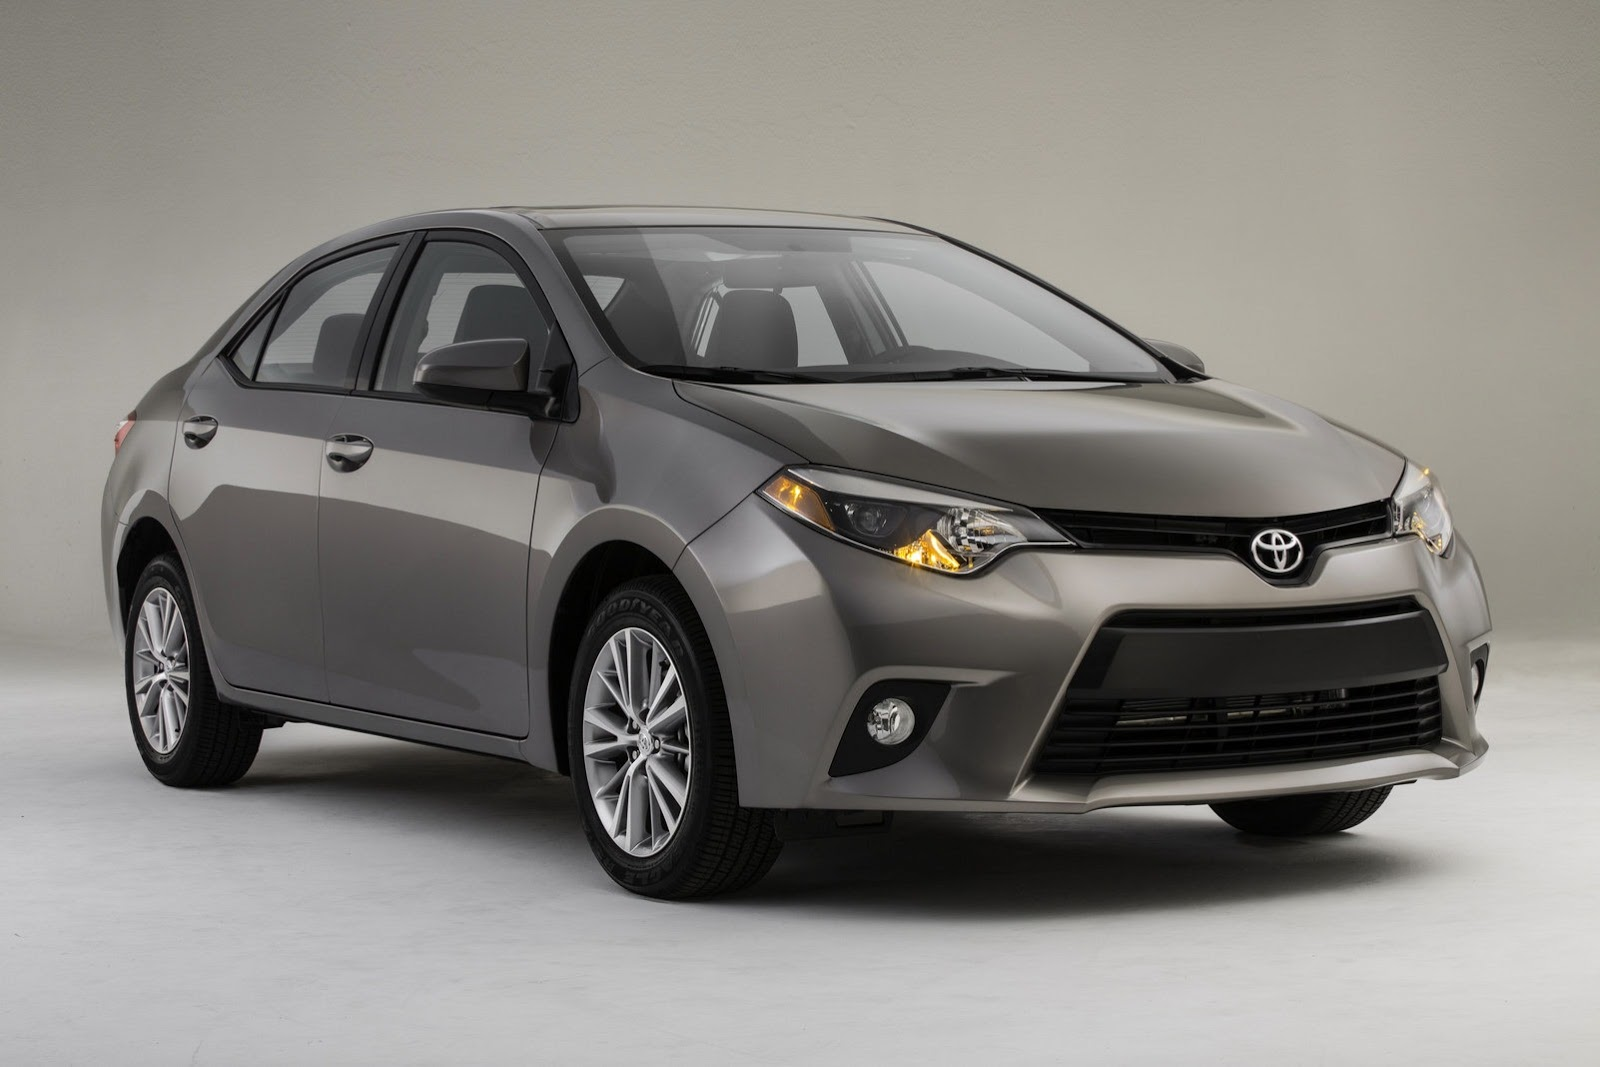 2014 toyota corolla fully revealed autoevolution. Black Bedroom Furniture Sets. Home Design Ideas